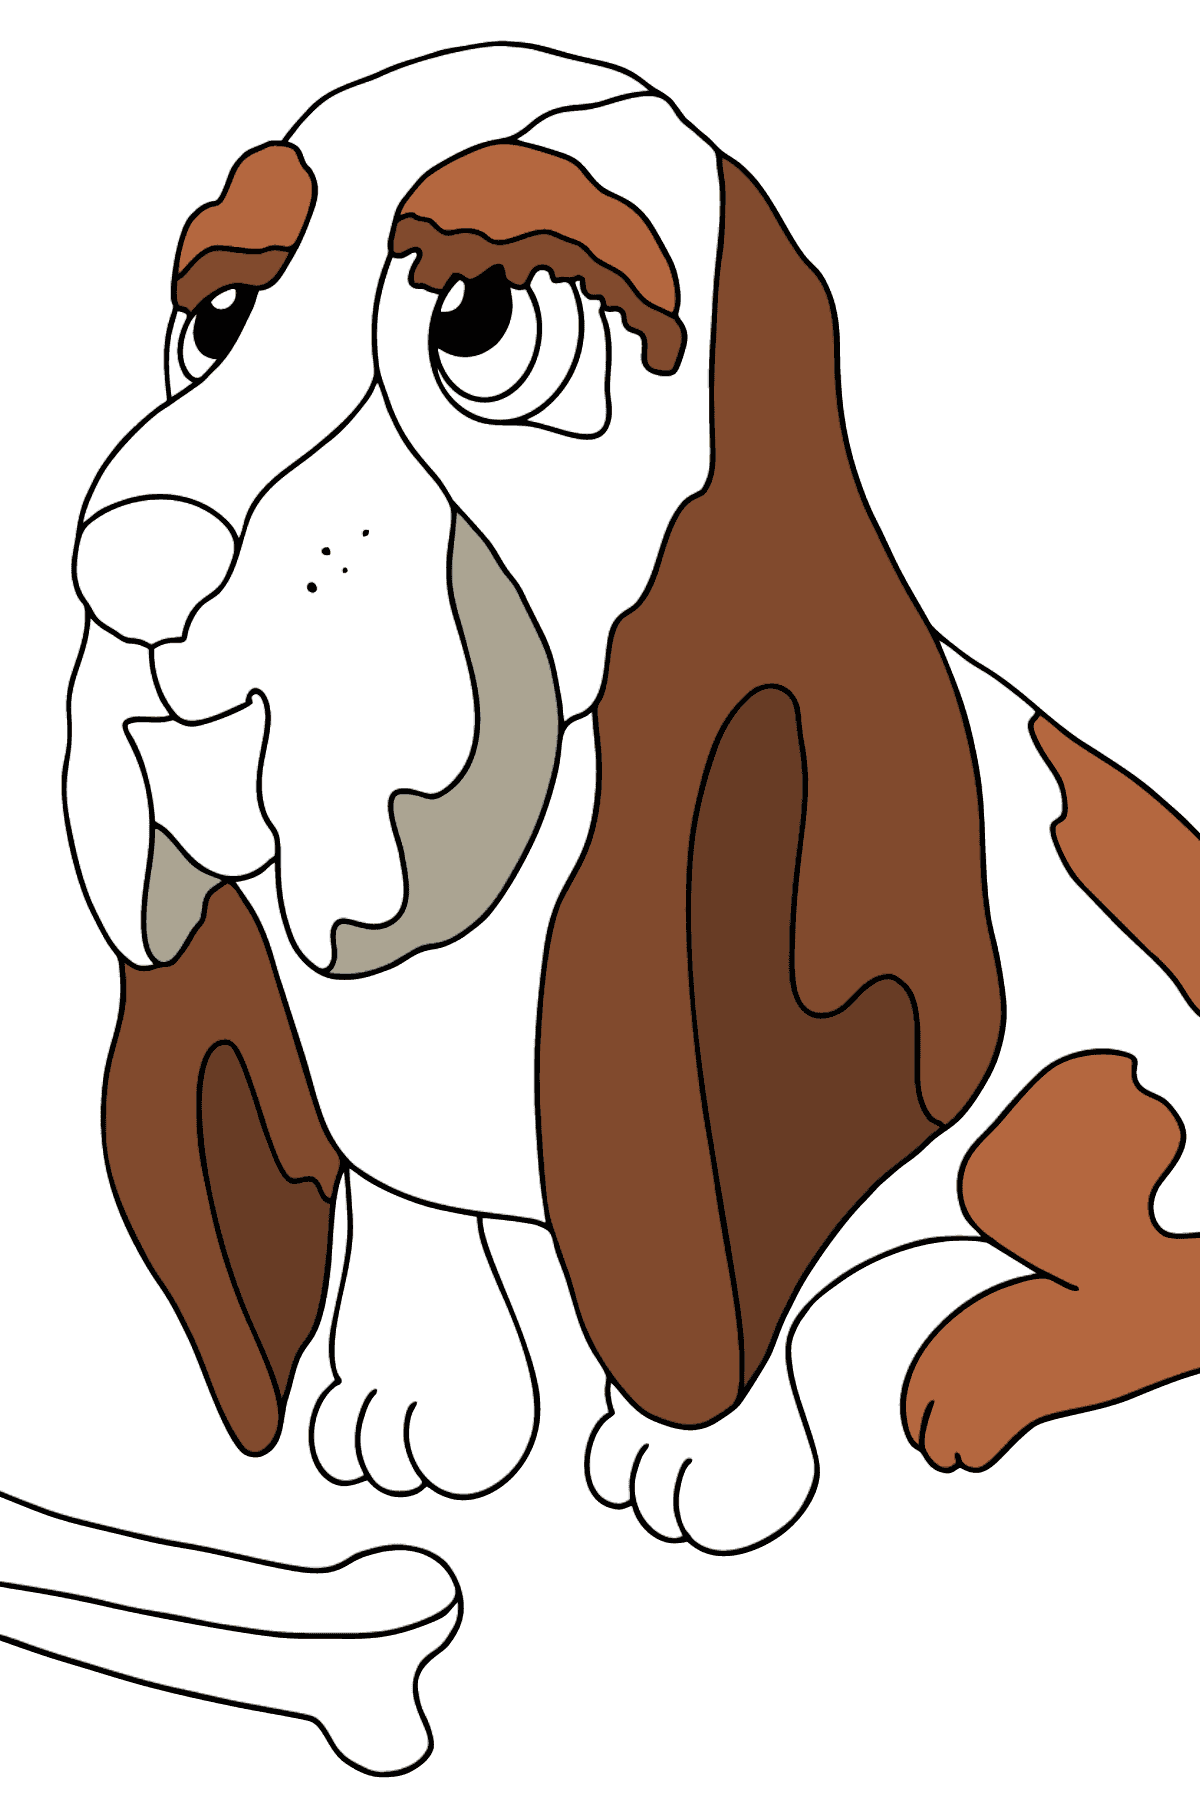 Coloring Page - A Dog with a Bone - Coloring Pages for Kids